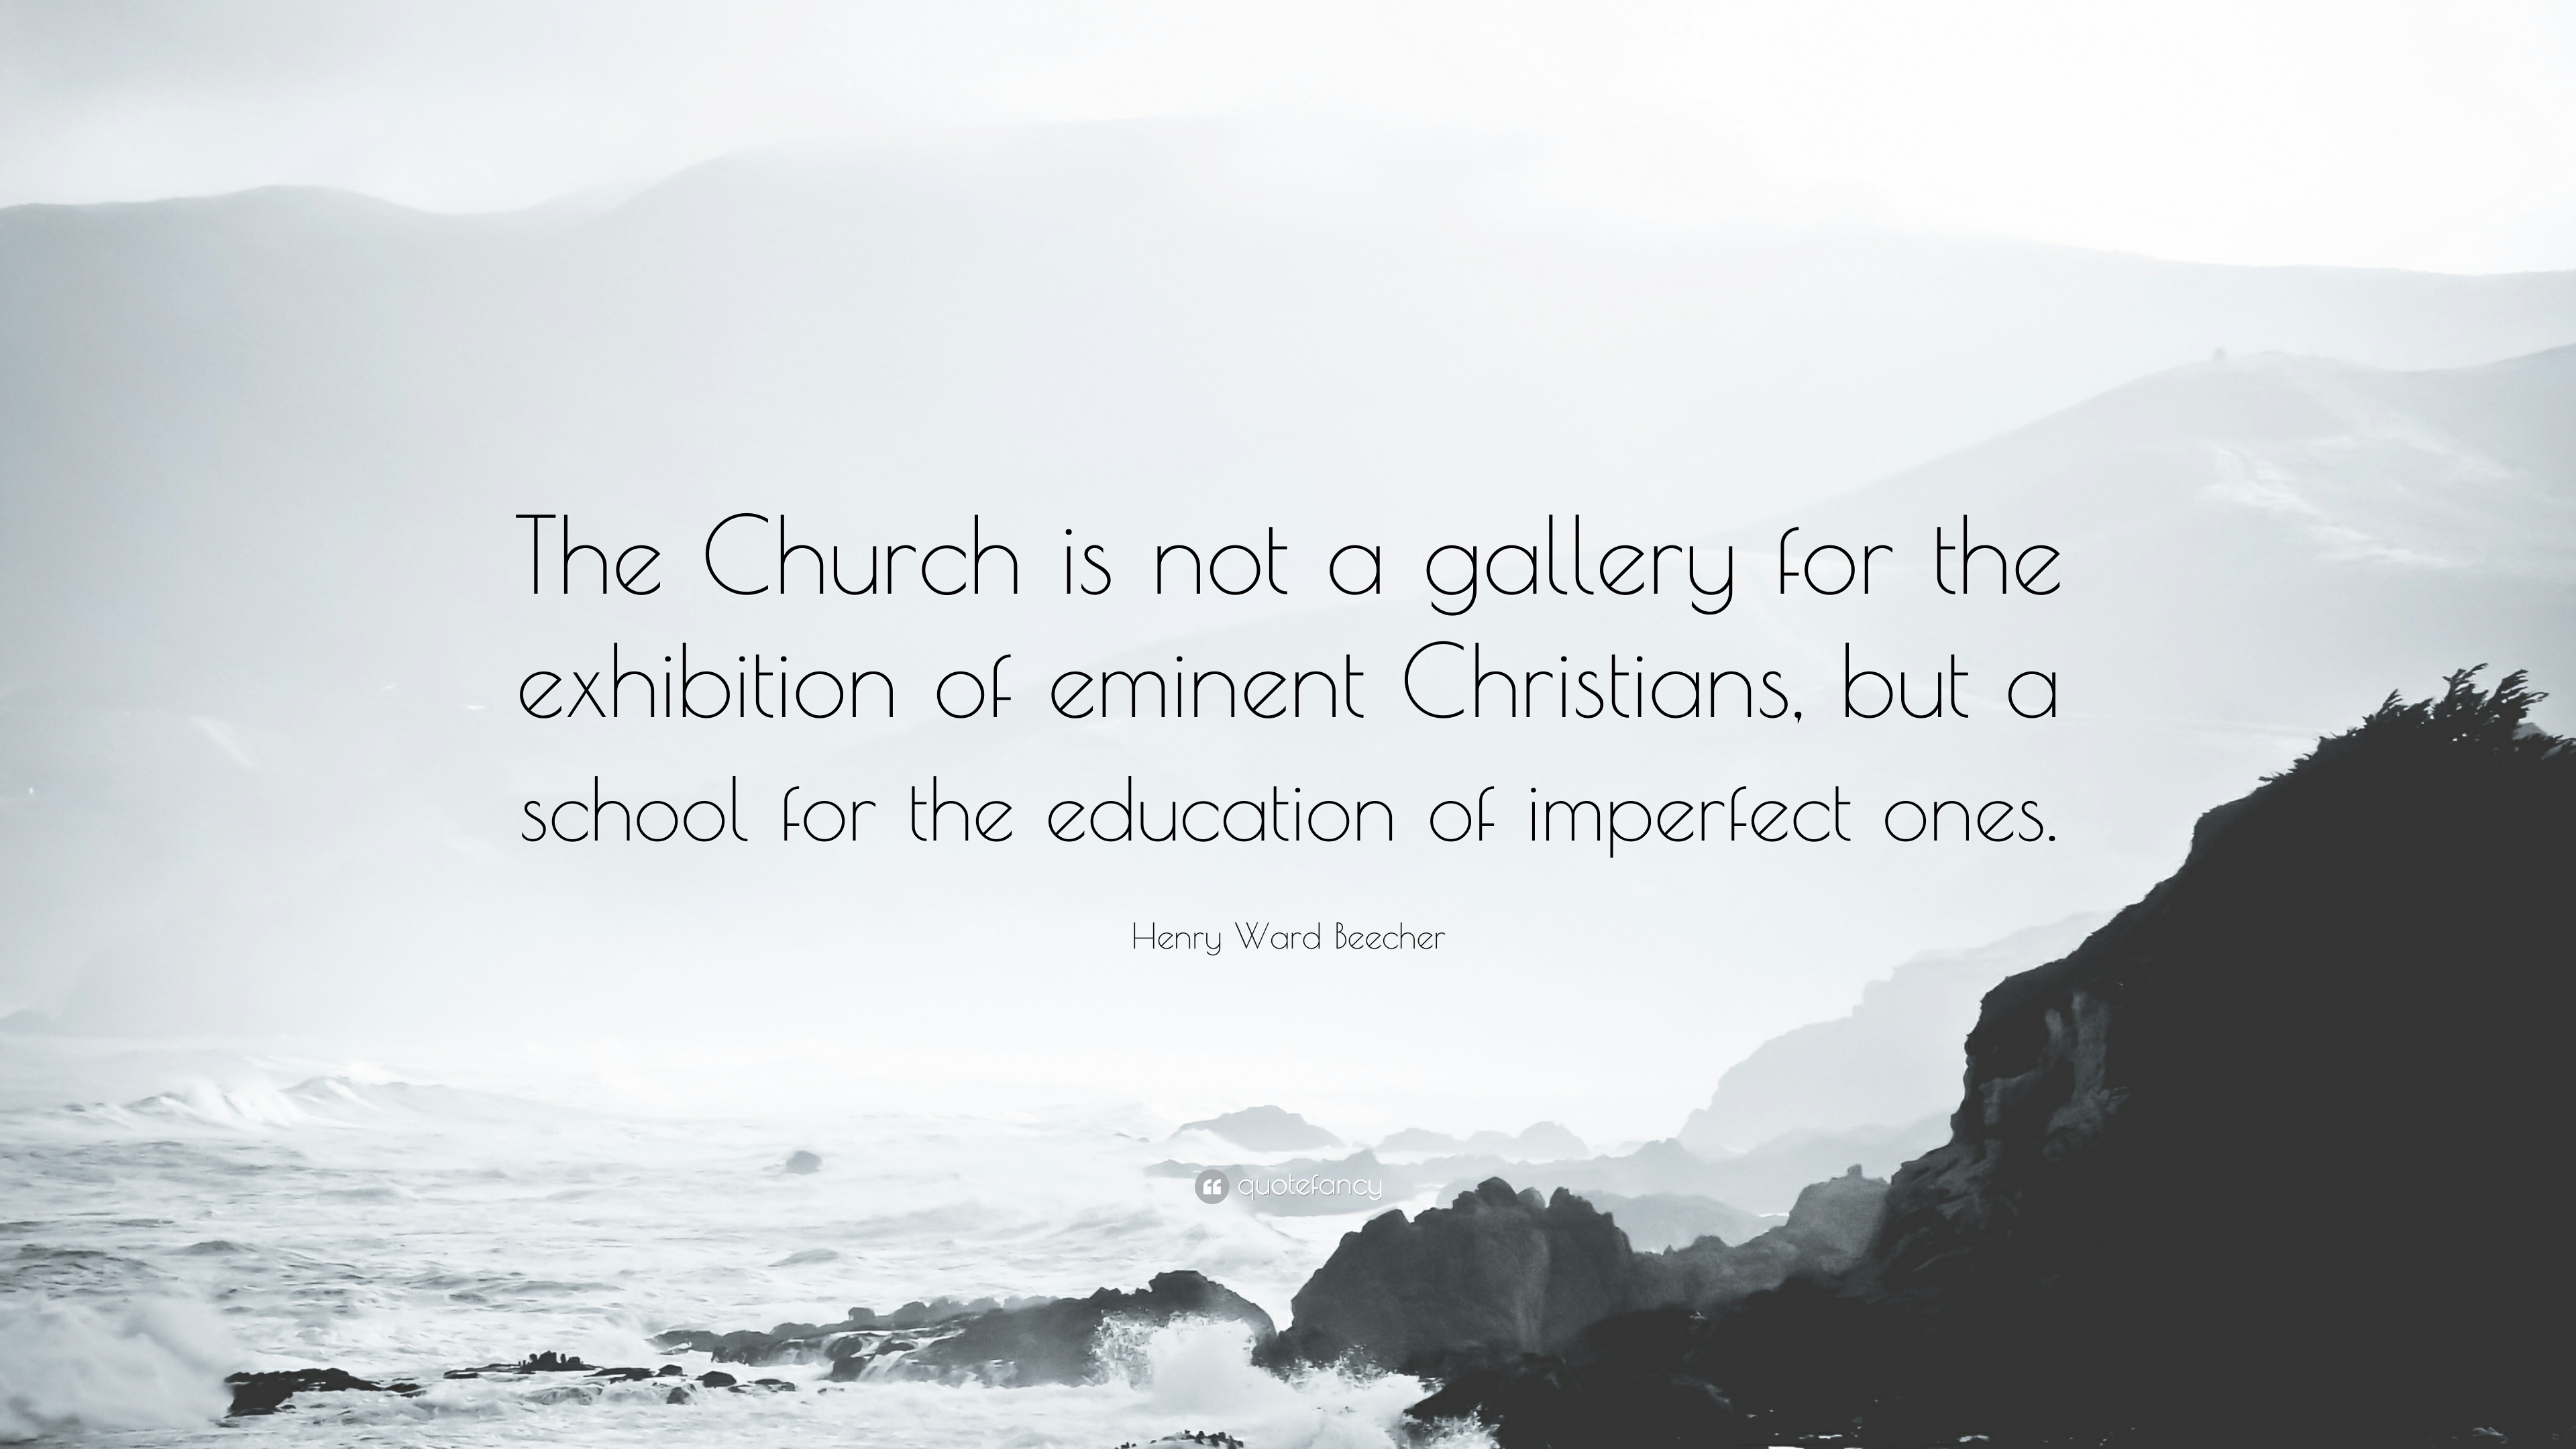 Henry Ward Beecher Quote The Church Is Not A Gallery For The Exhibition Of Eminent Christians But A School For The Education Of Imperfect Ones 6 Wallpapers Quotefancy